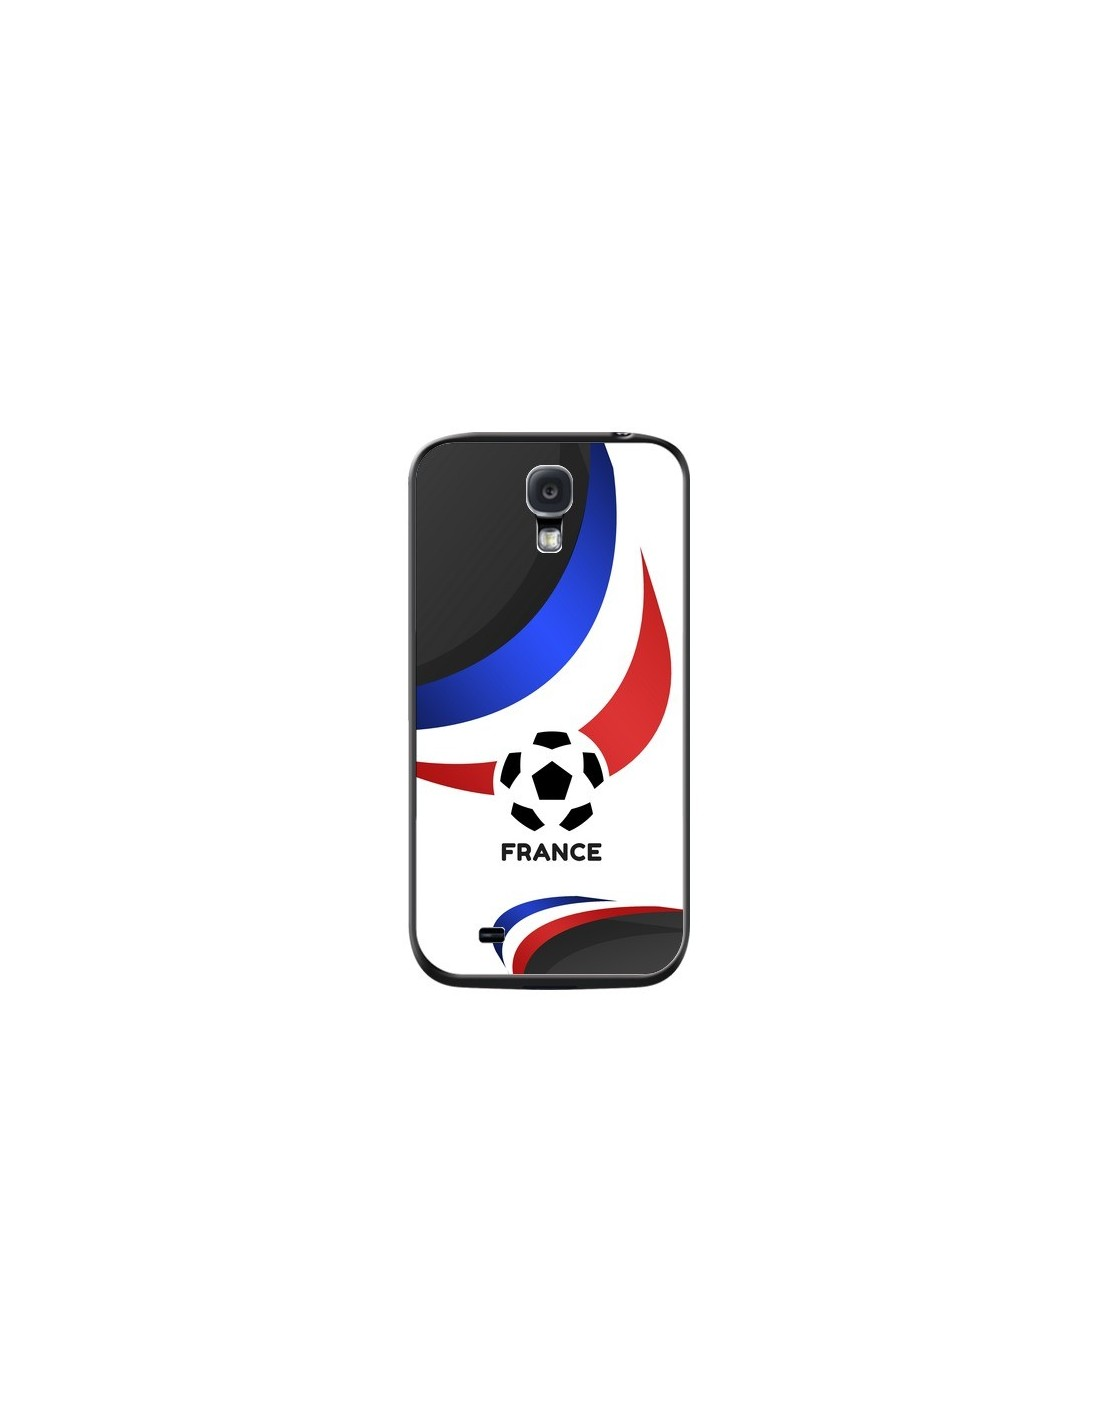 coque equipe france football pour samsung galaxy s4 madotta. Black Bedroom Furniture Sets. Home Design Ideas